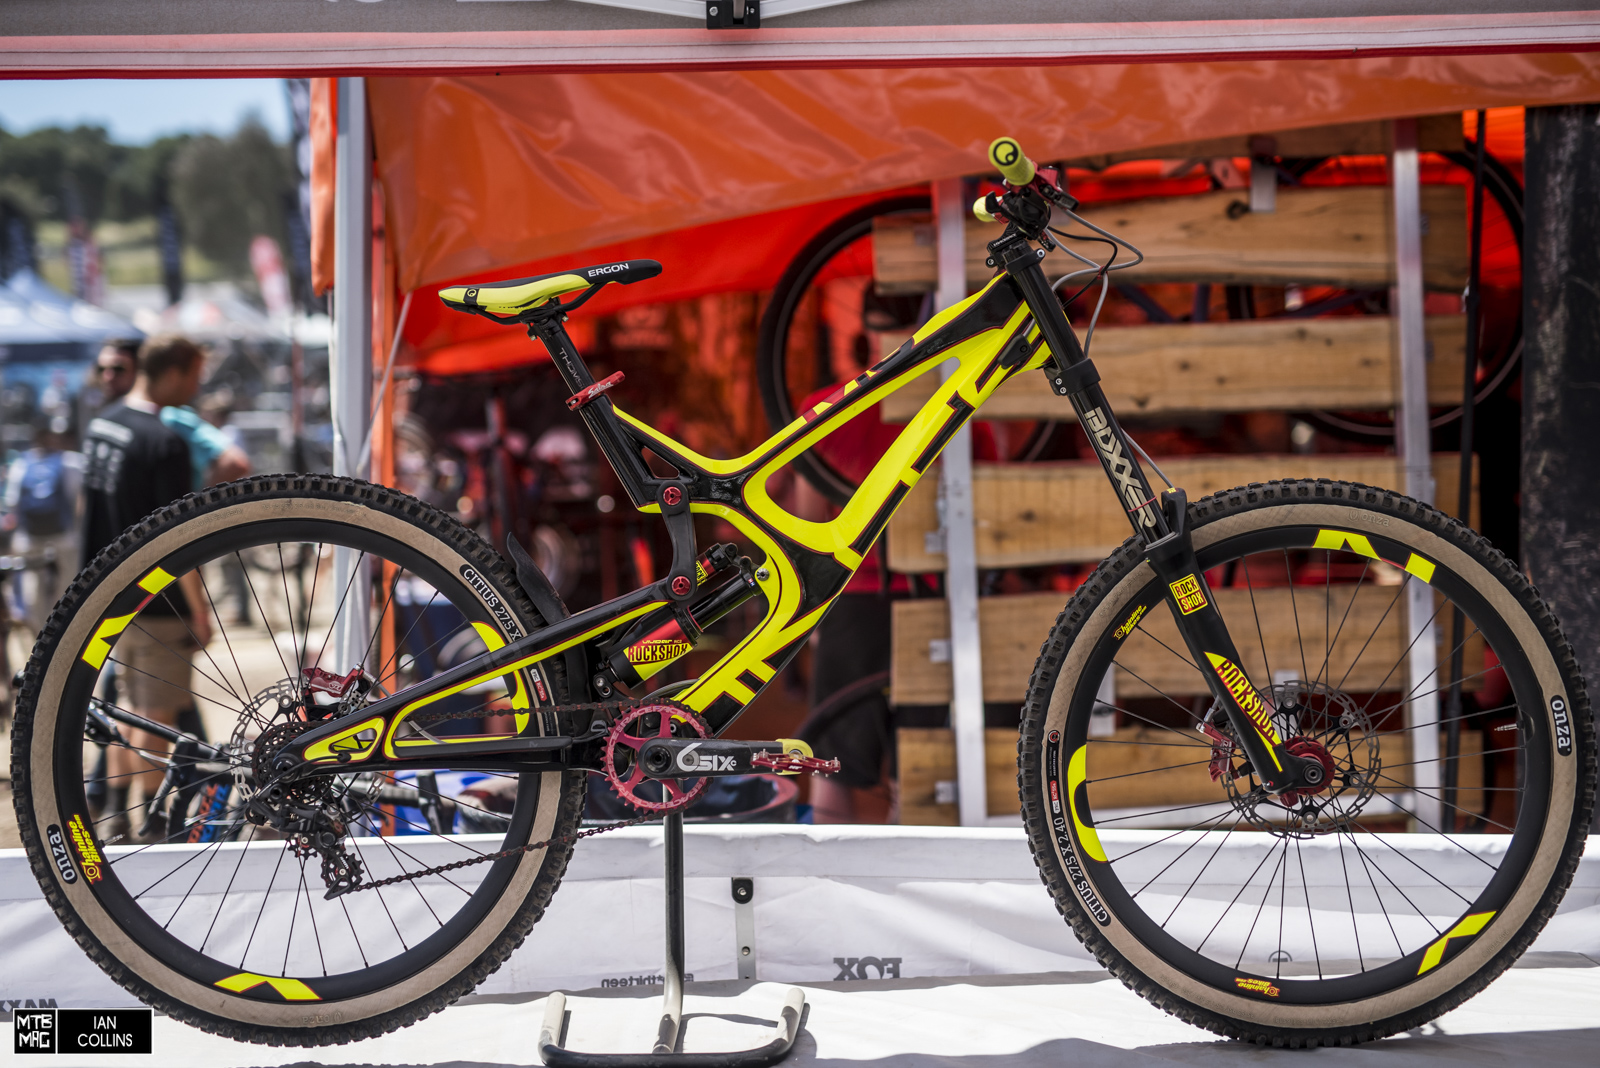 The most talked about bike of the show. Chainline bikes built this all out custom Intense M16.